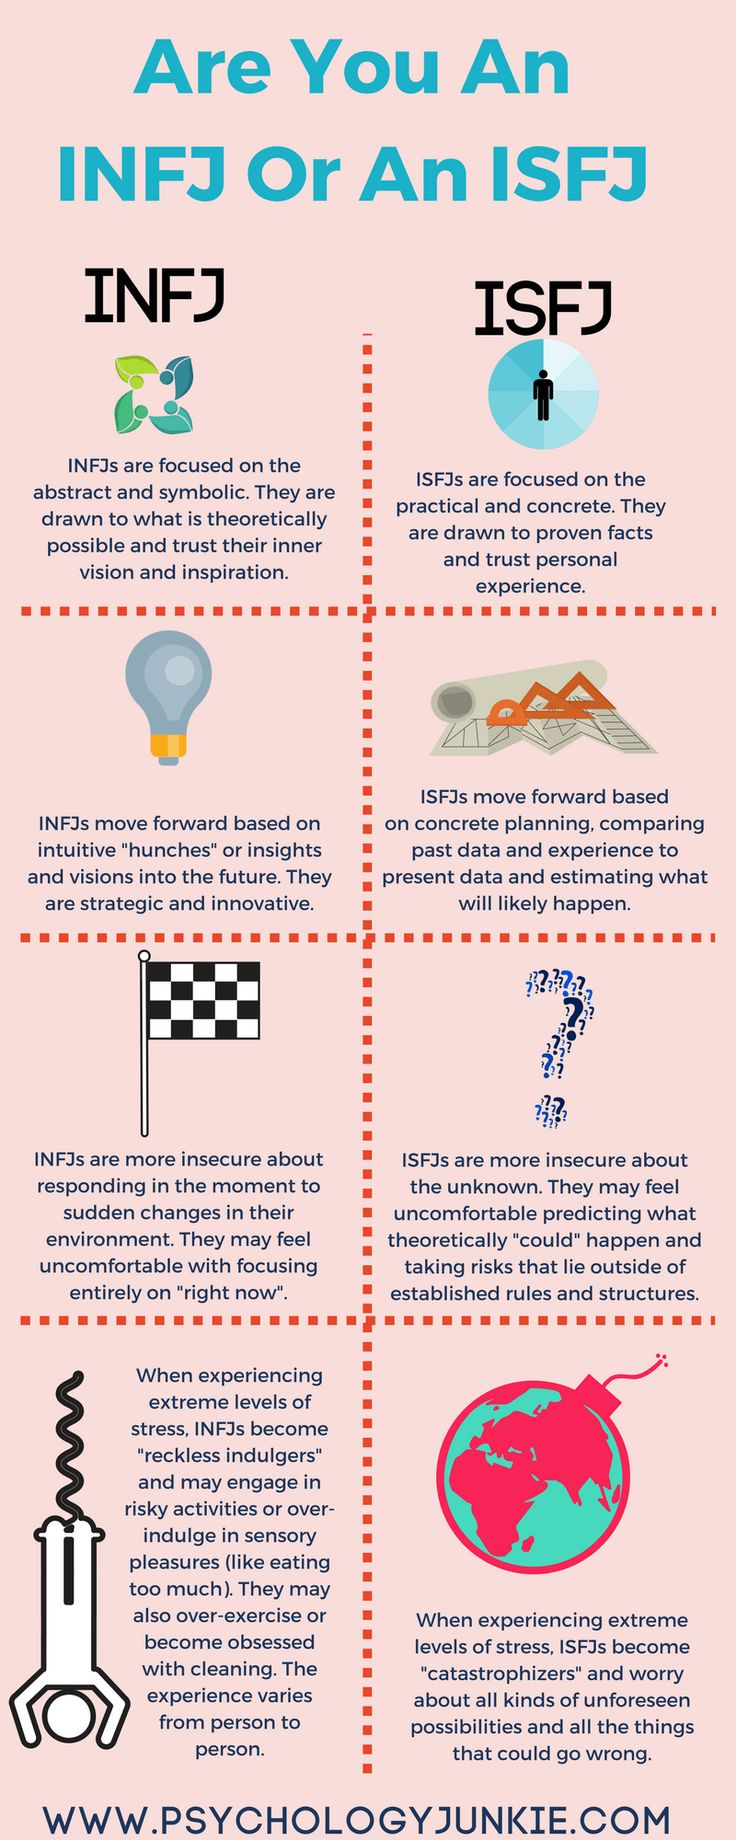 Not Sure Whether You're An #INFJ Or an #ISFJ? Find out in this article and infographic!